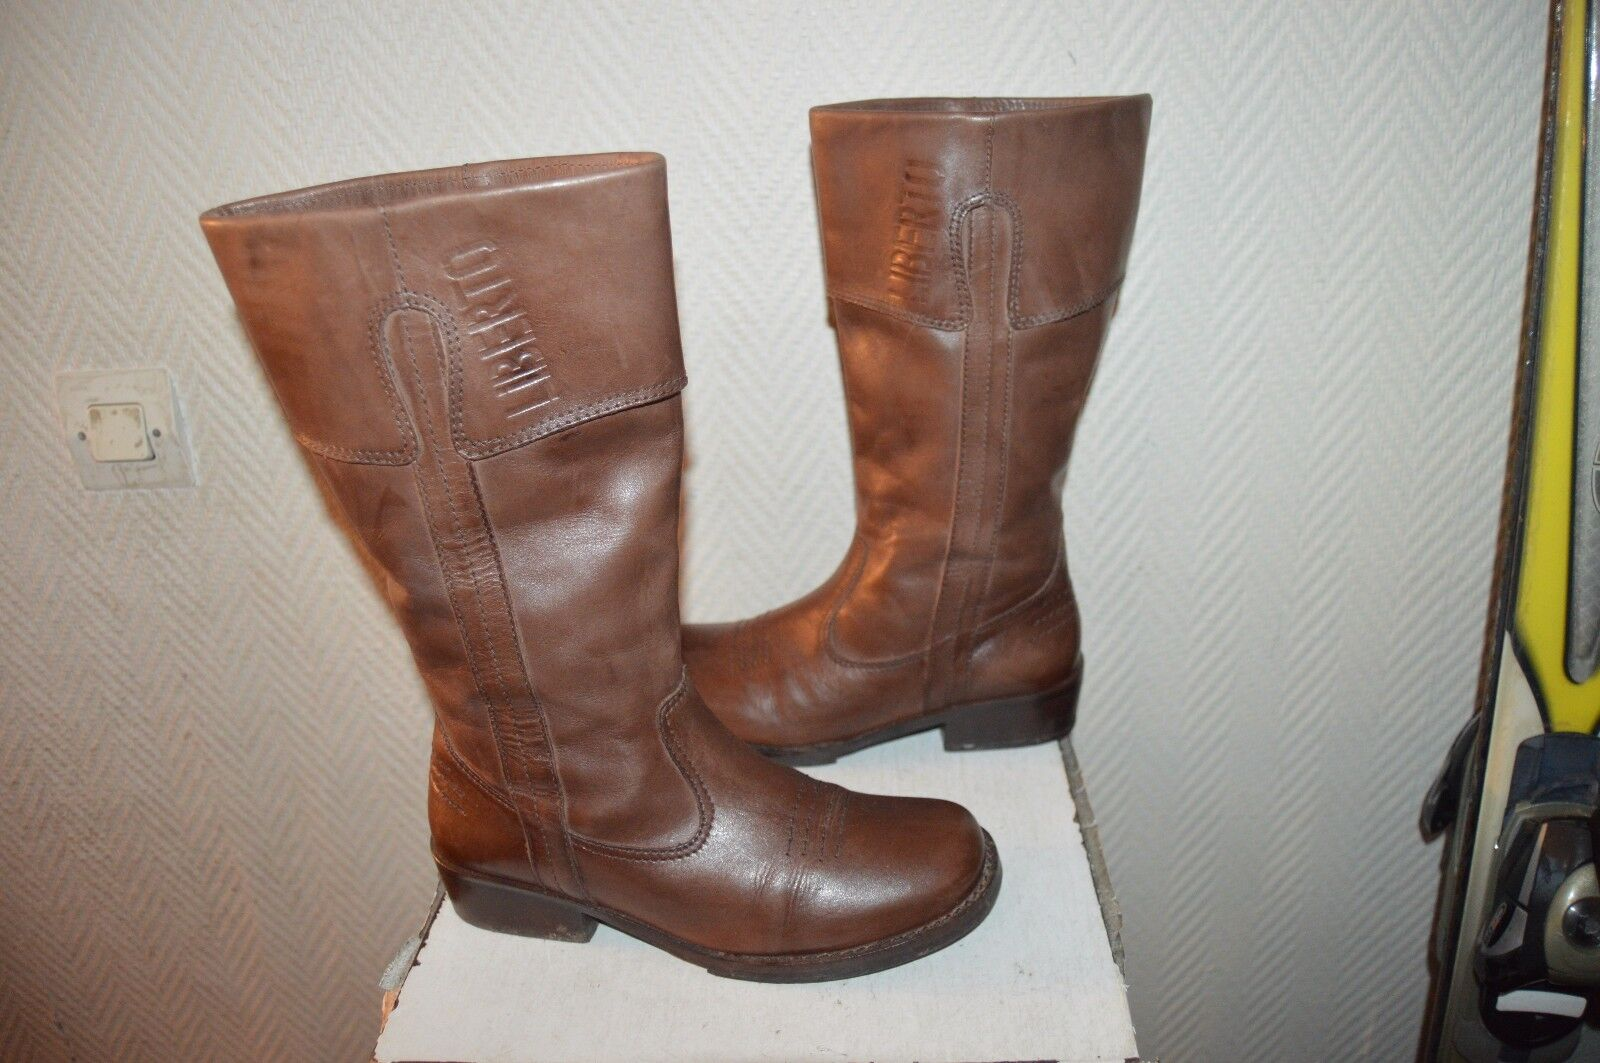 BOTTES CUIR  LIBERTO  size 37 RANGERS LEATHER BOOTS BOTAS STIVALI BE